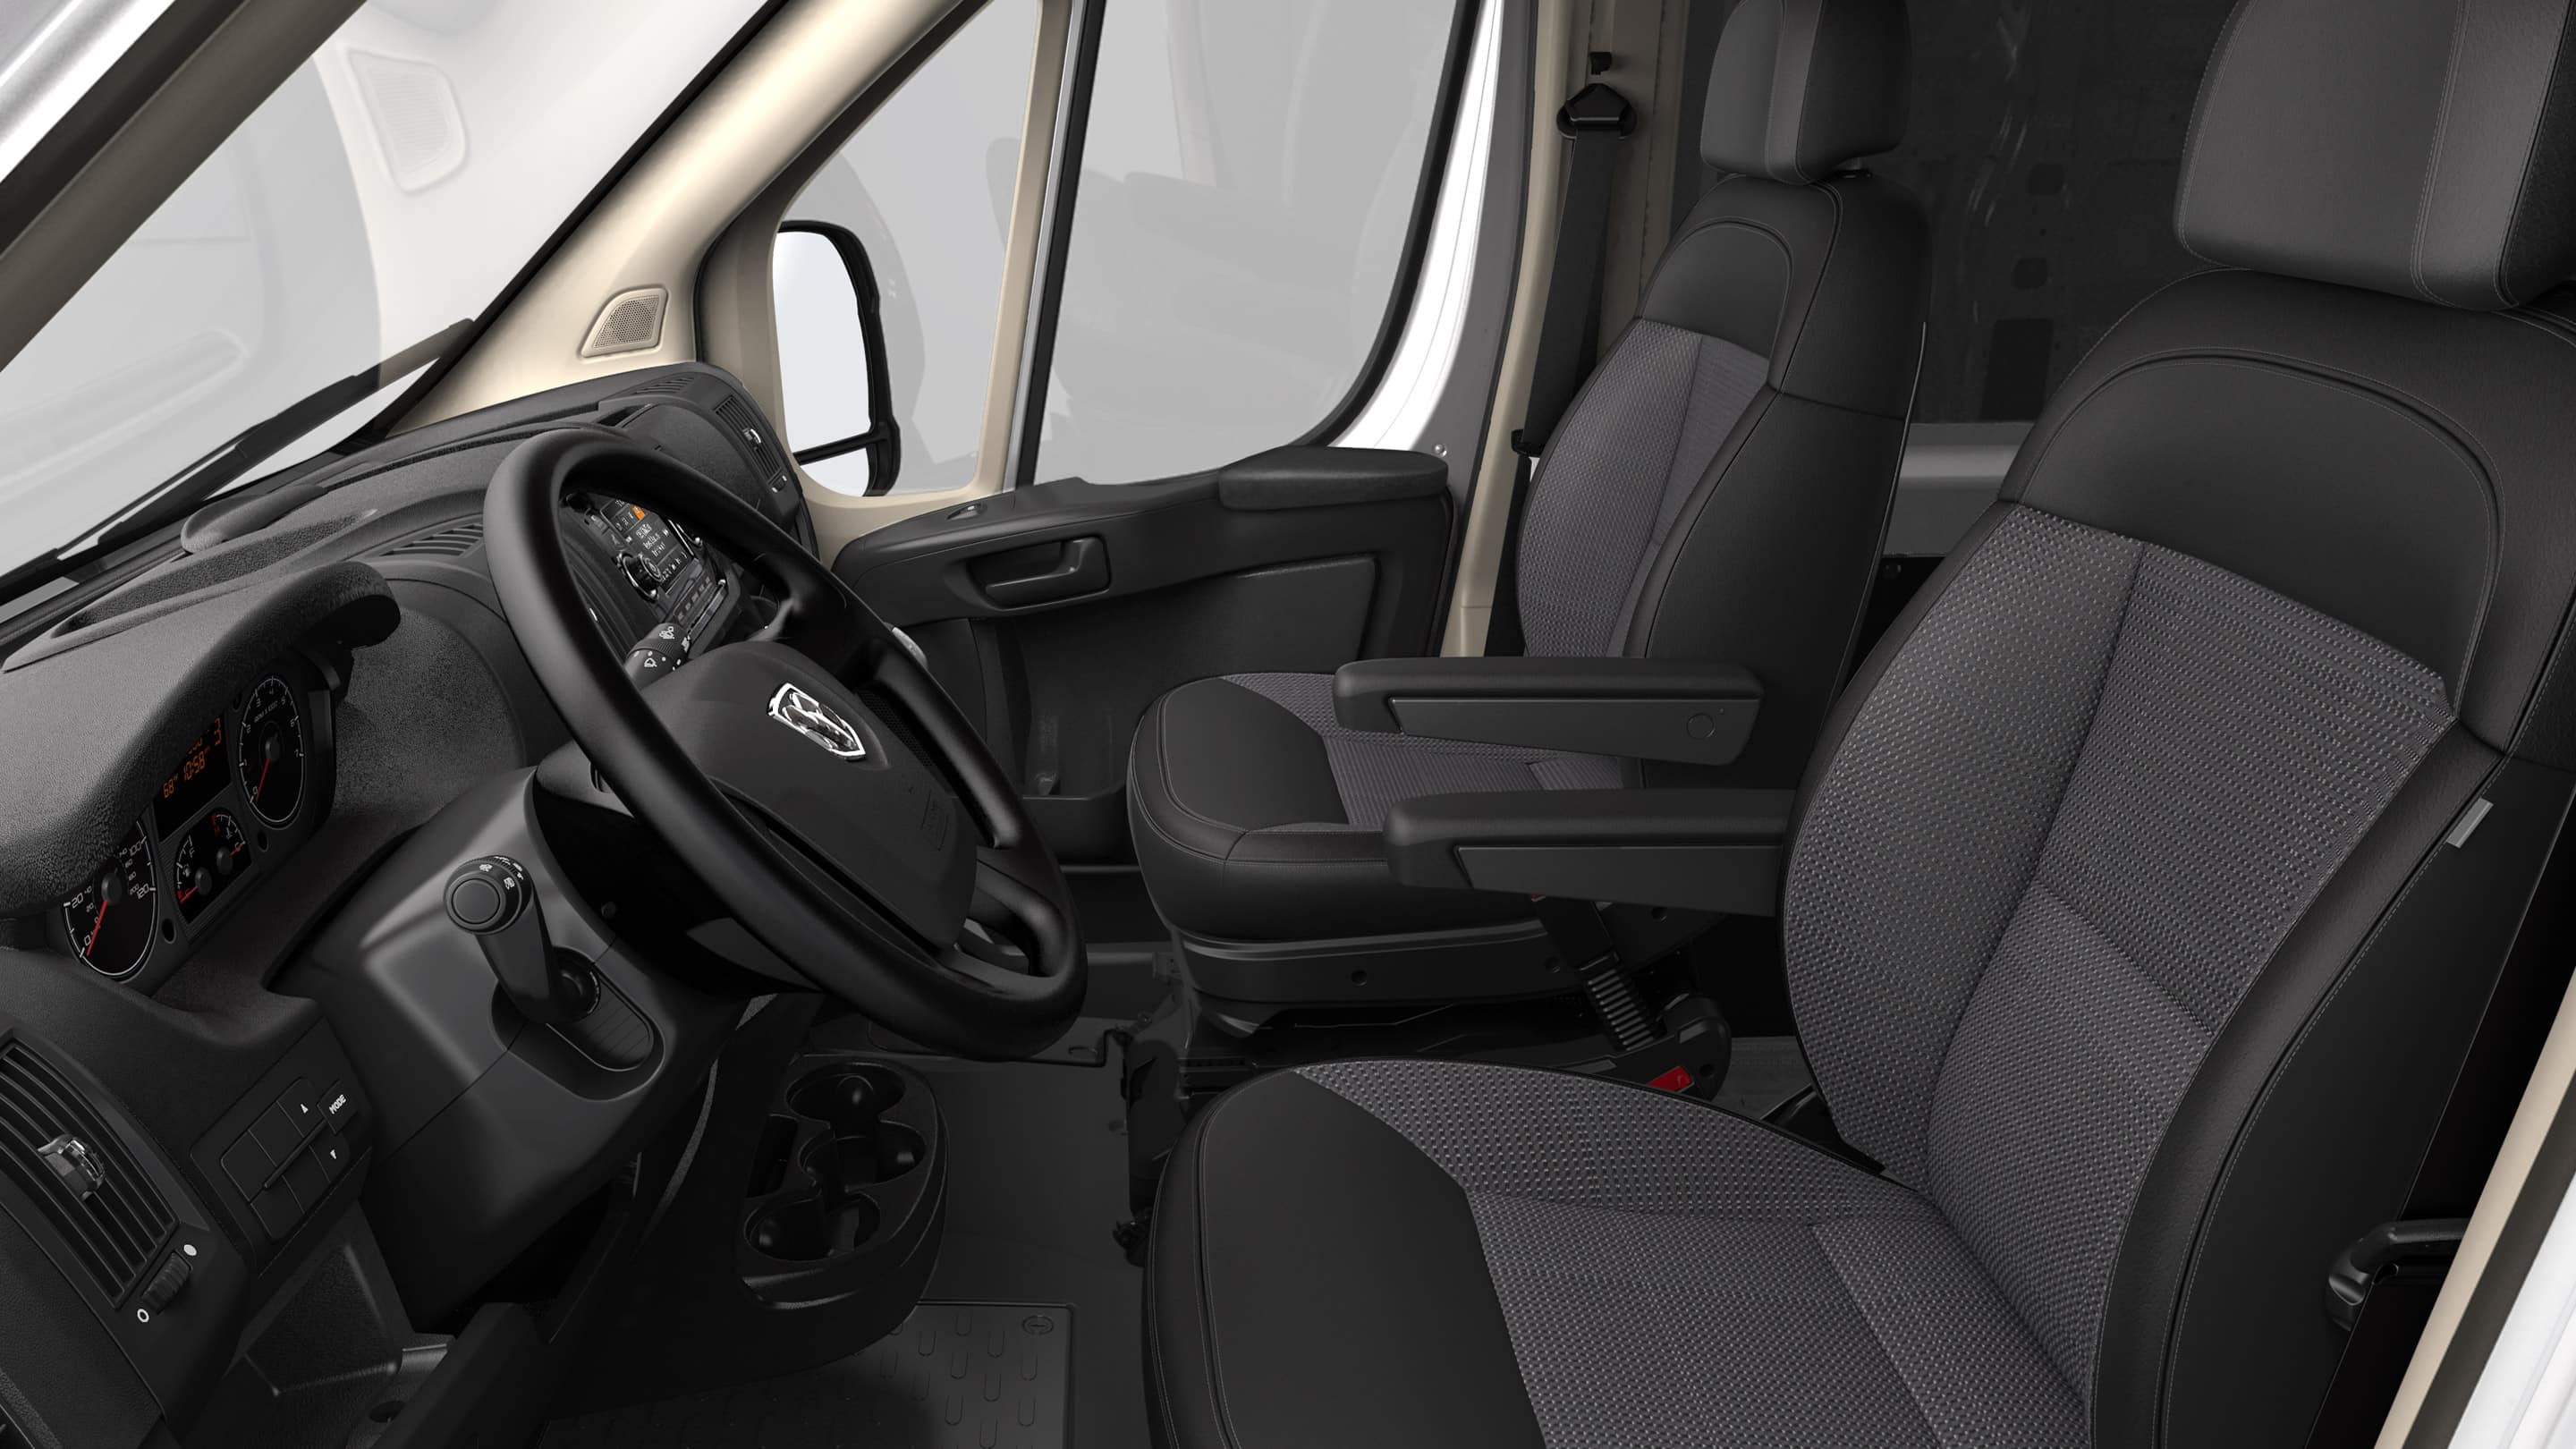 2018 Ram Promaster For Sale Near Owings Mills Md